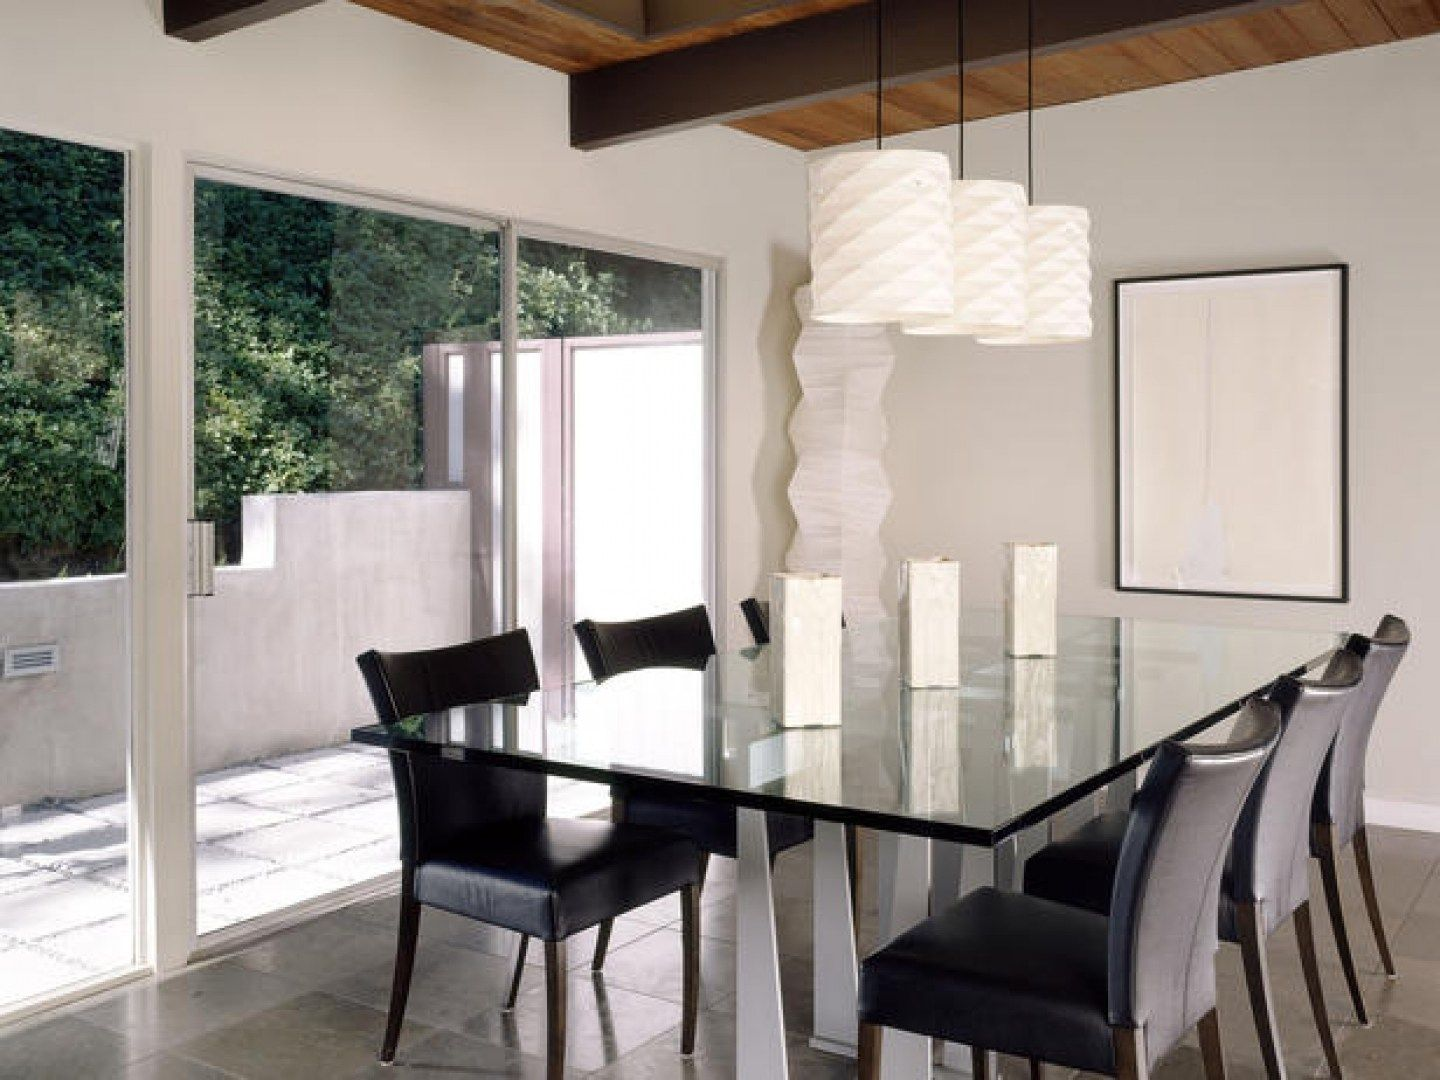 Dining Room Lighting Fixtures Dining Room Lighting Modern Dining Room Light Fixtures Modern Dining Room Tables